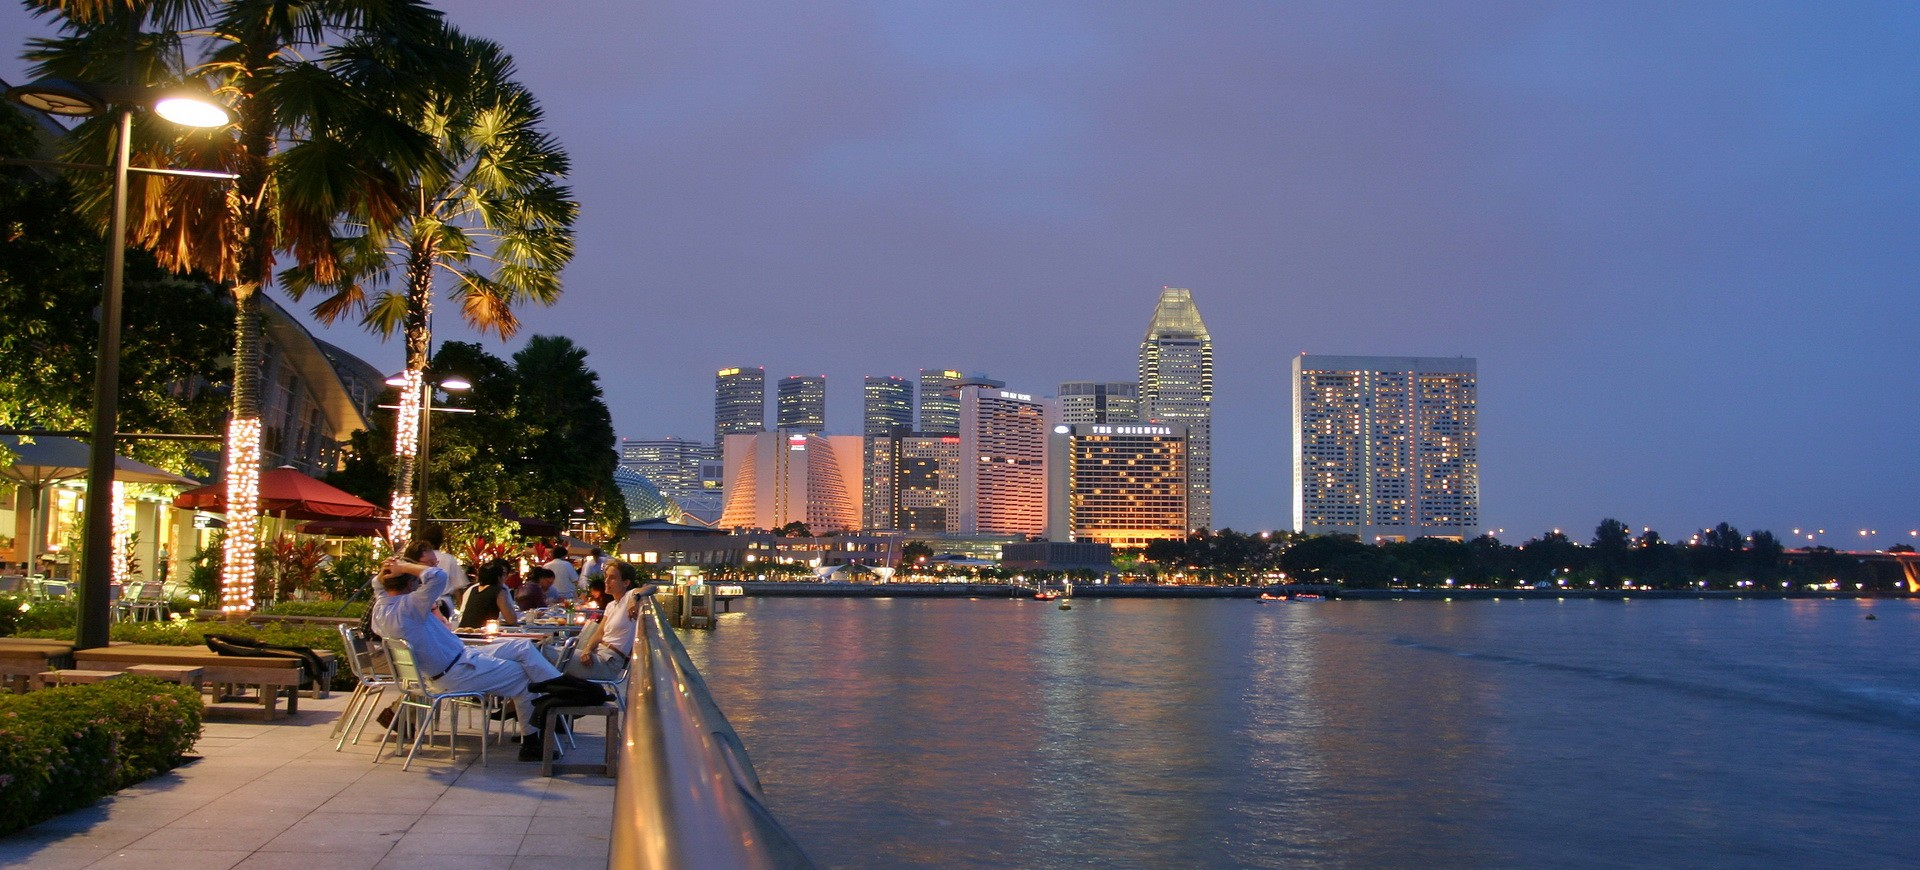 Baie de Singapour by night